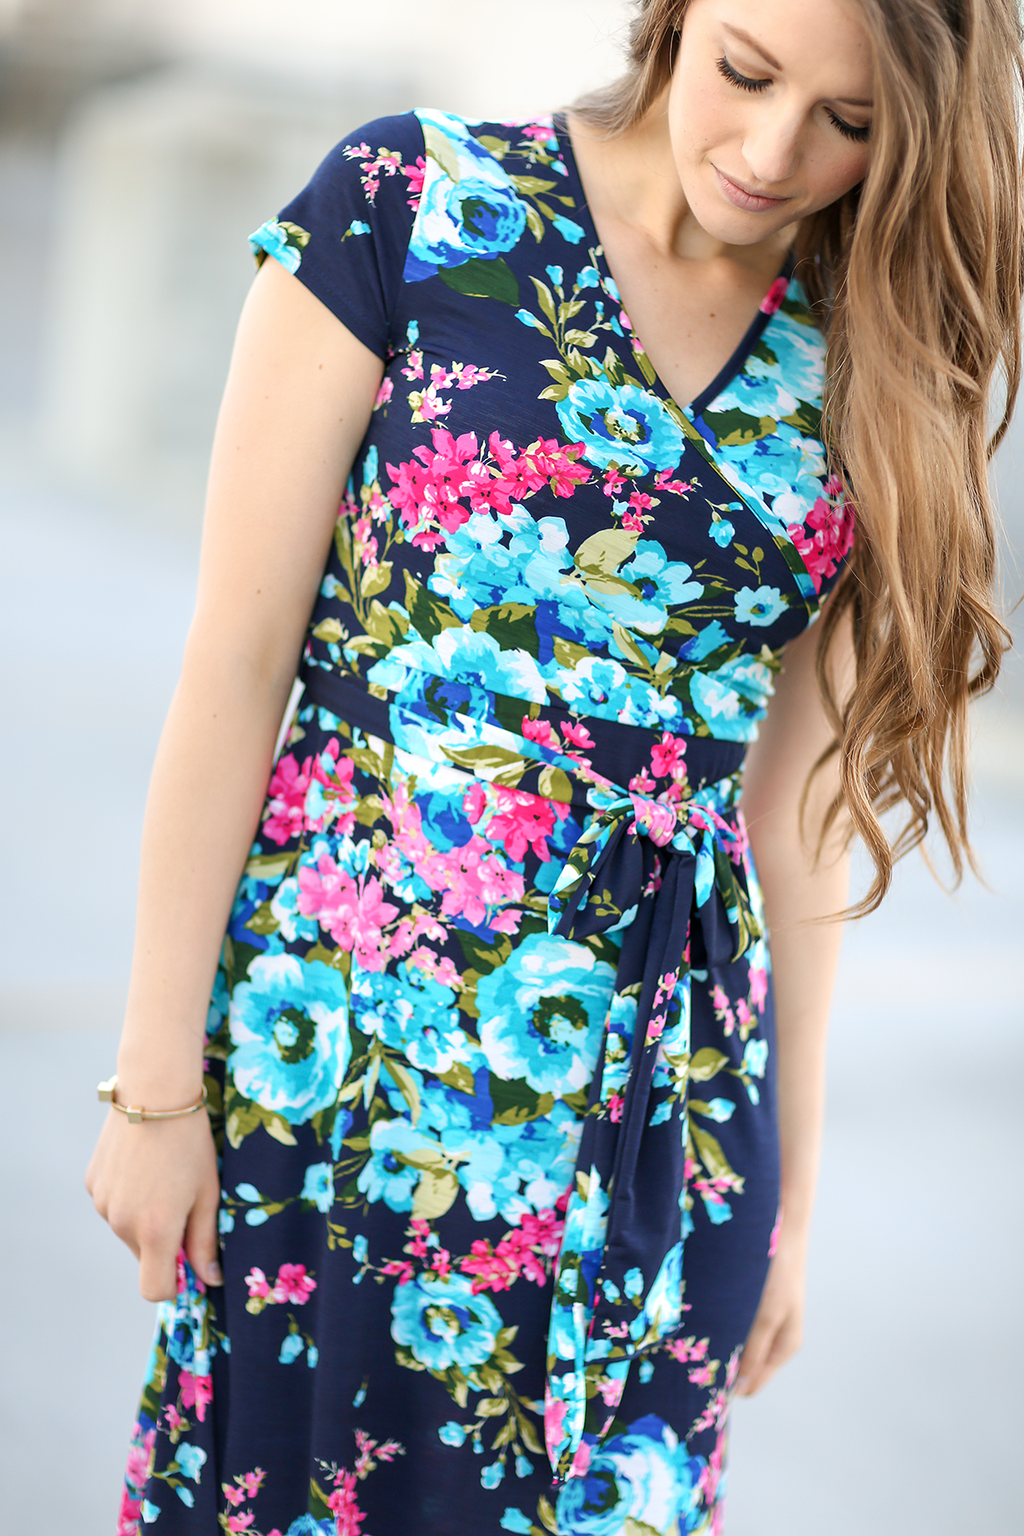 Wrapped Up In You Floral Maxi Dress in Navy